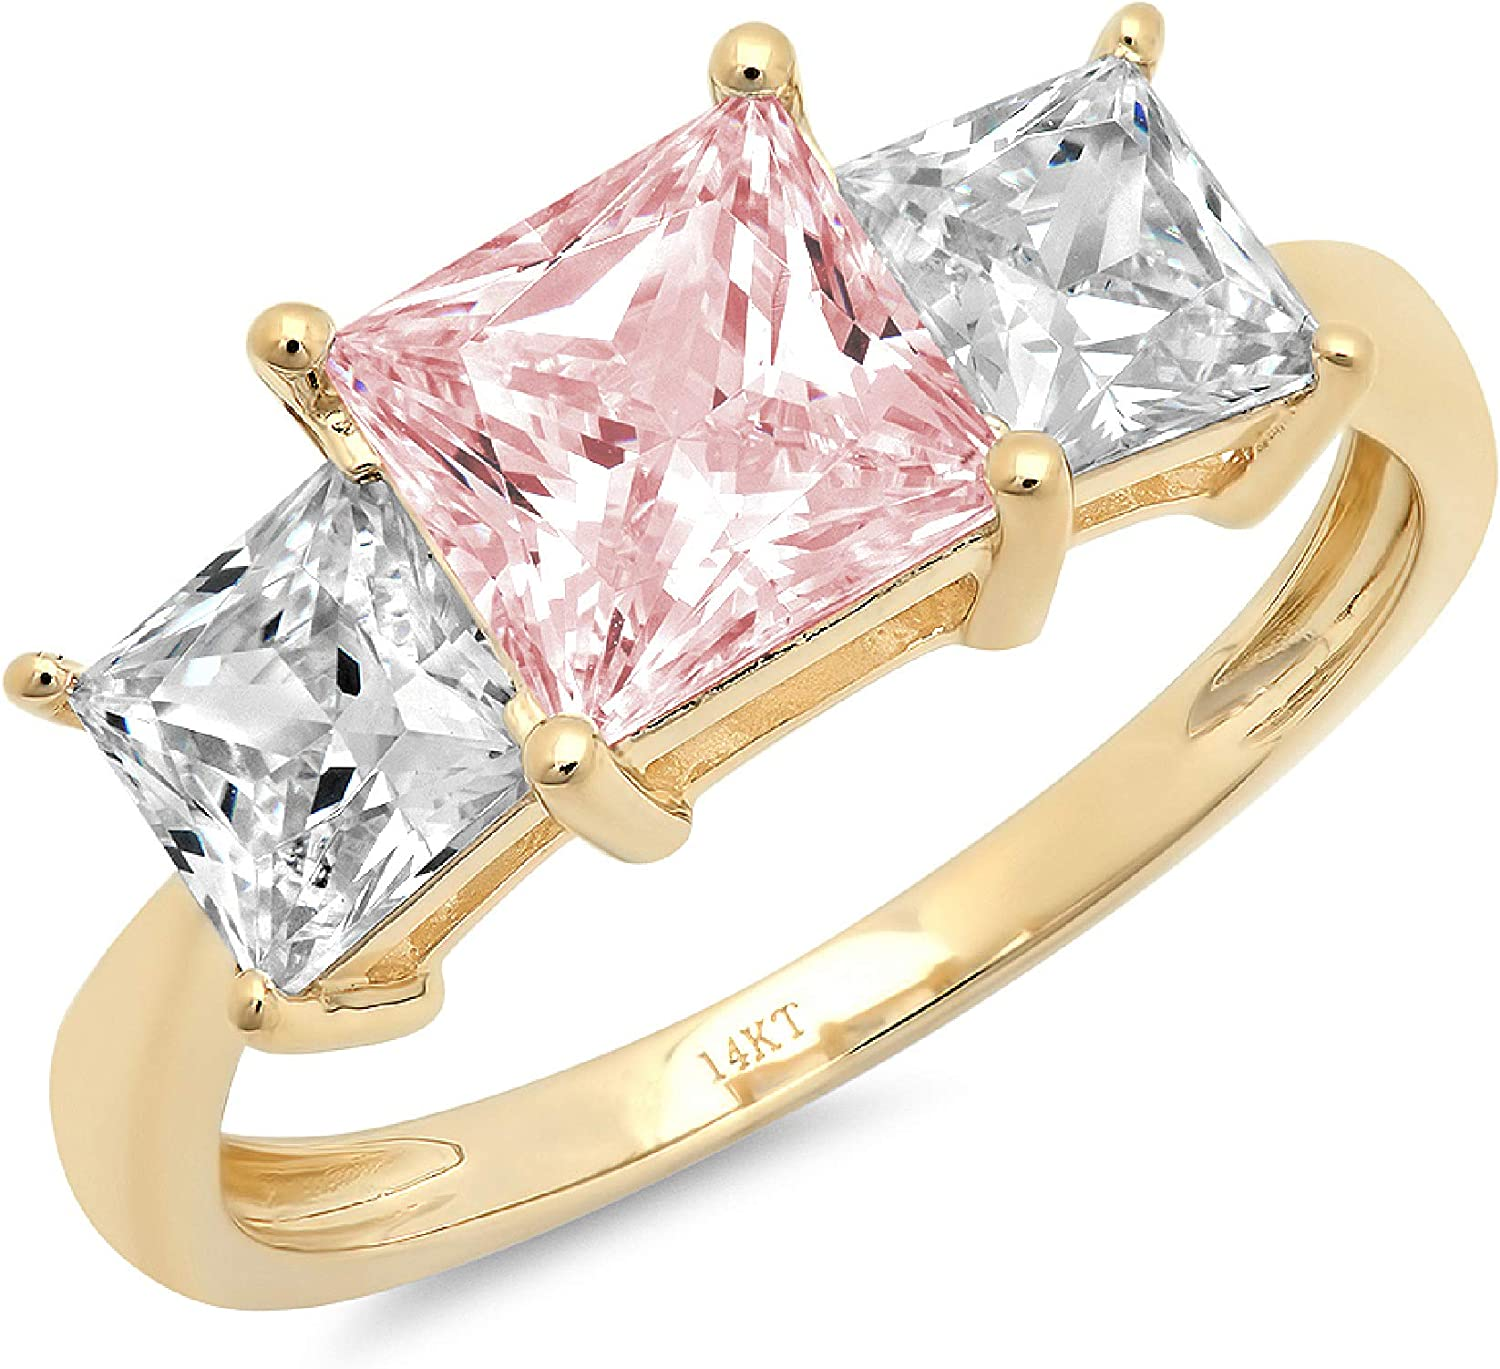 2.94ct Princess Cut 3 Stone Solitaire with Accent Pink Ideal VVS1 Simulated Diamond CZ Engagement Promise Statement Anniversary Bridal Wedding Ring 14k Yellow Gold